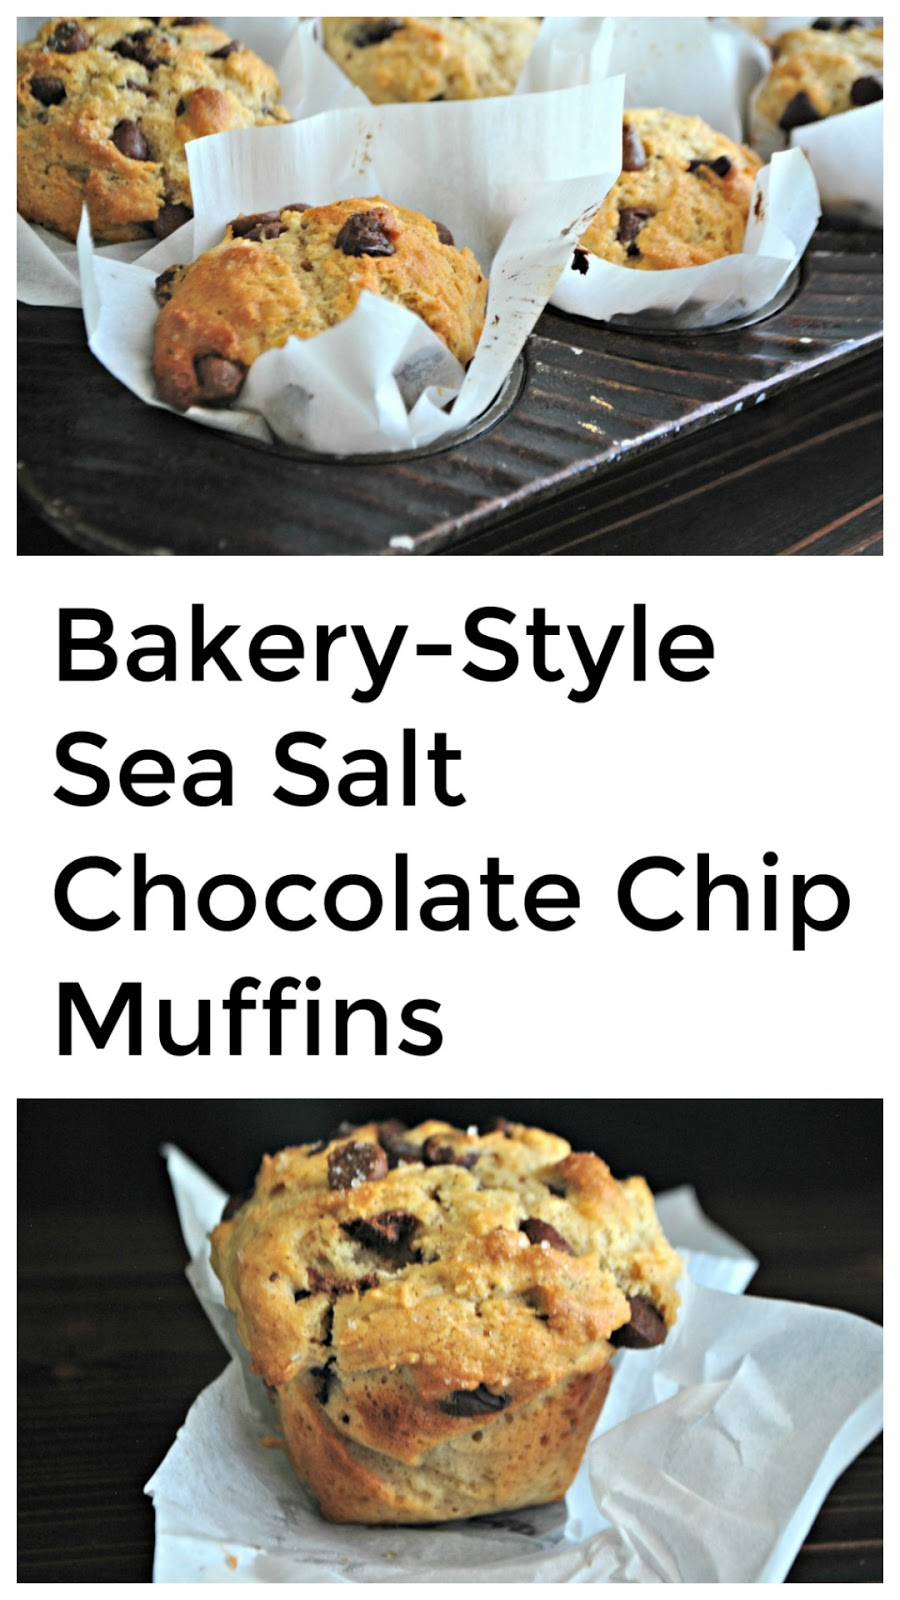 The classic bakery-style chocolate chip muffin topped with sea salt.